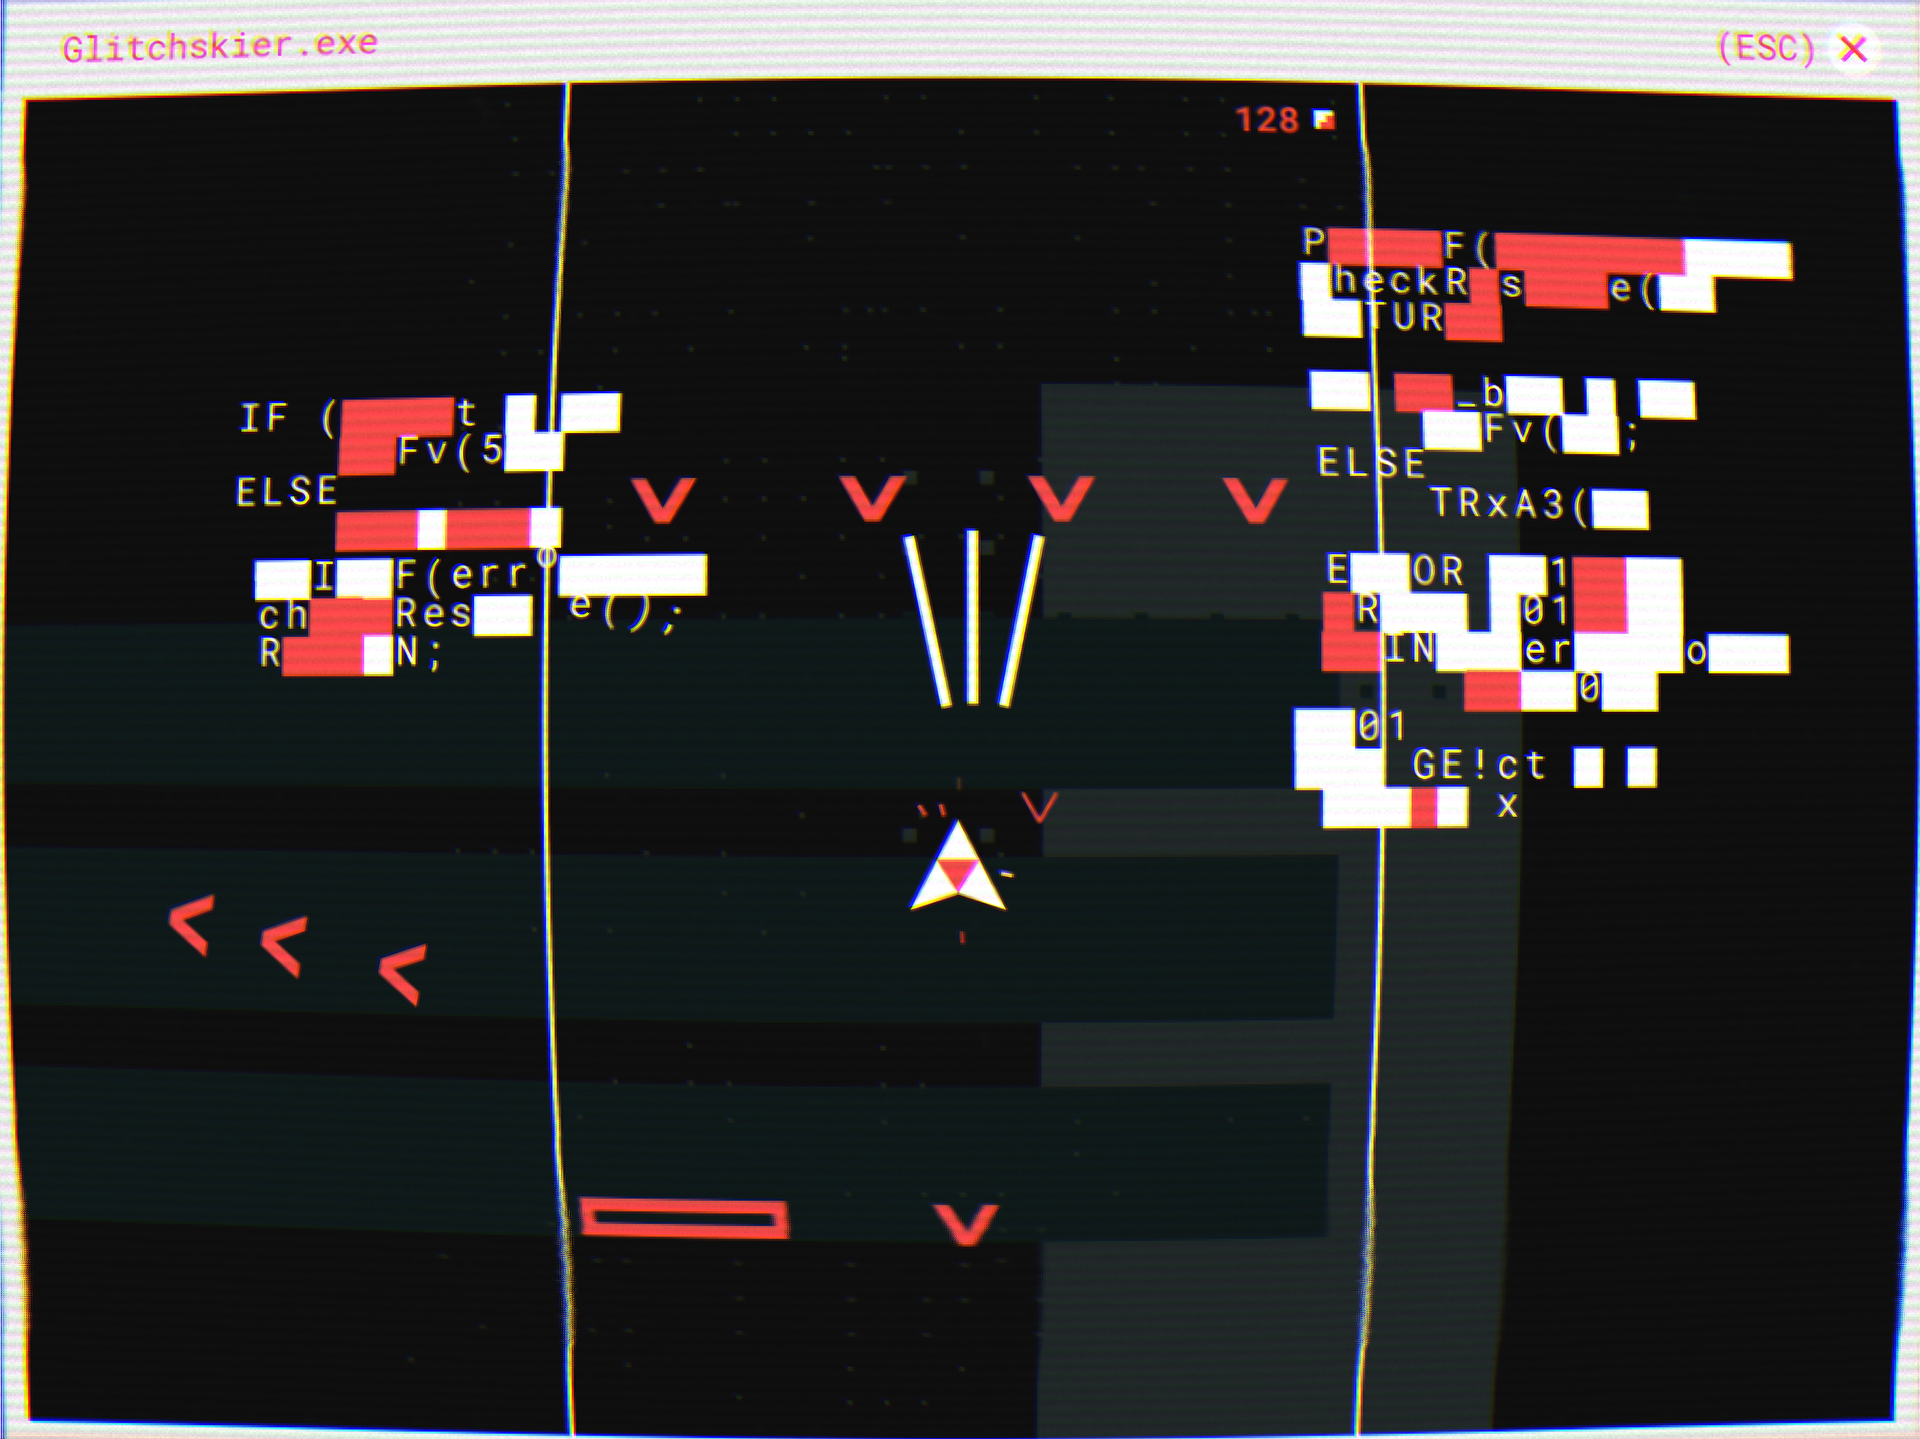 Wonderful, chaotic shooter Glitchskier is just 99p / 99c on the App Store